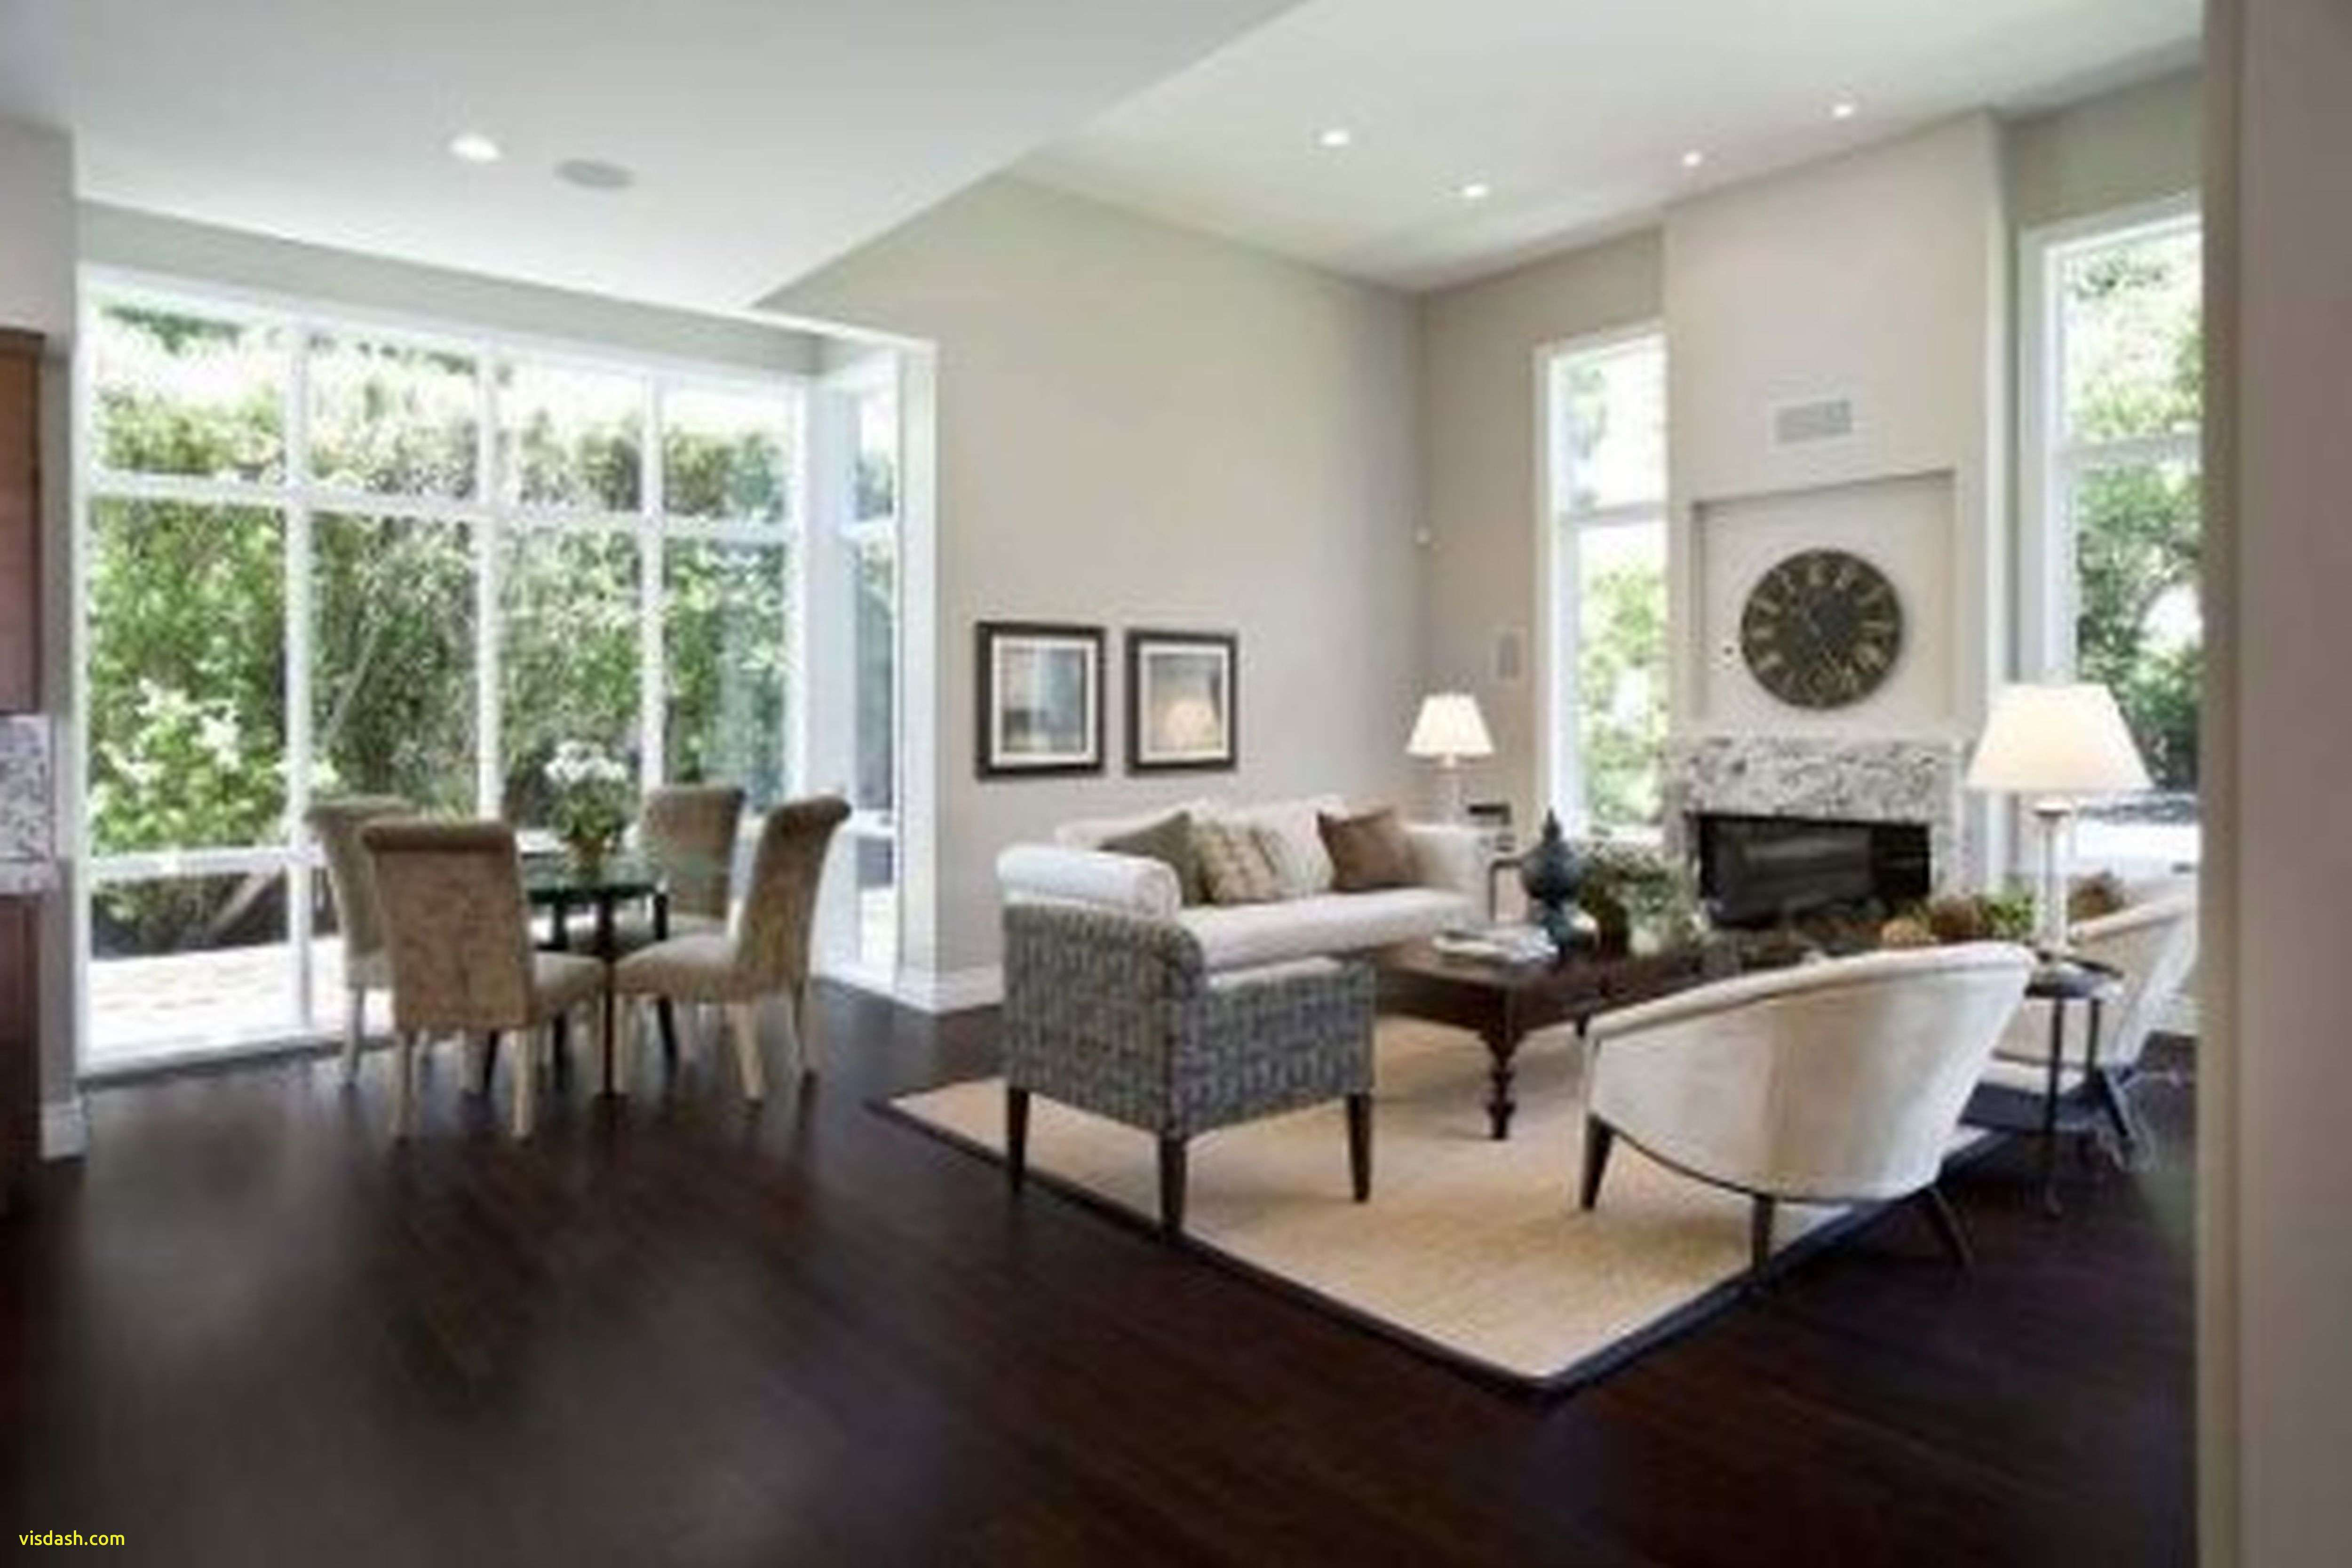 hardwood floor ideas for living room of beautiful living room design ideas with hardwood floors home decor regarding living room design ideas with hardwood floors lovely living room download darkood floors living room gen4congress